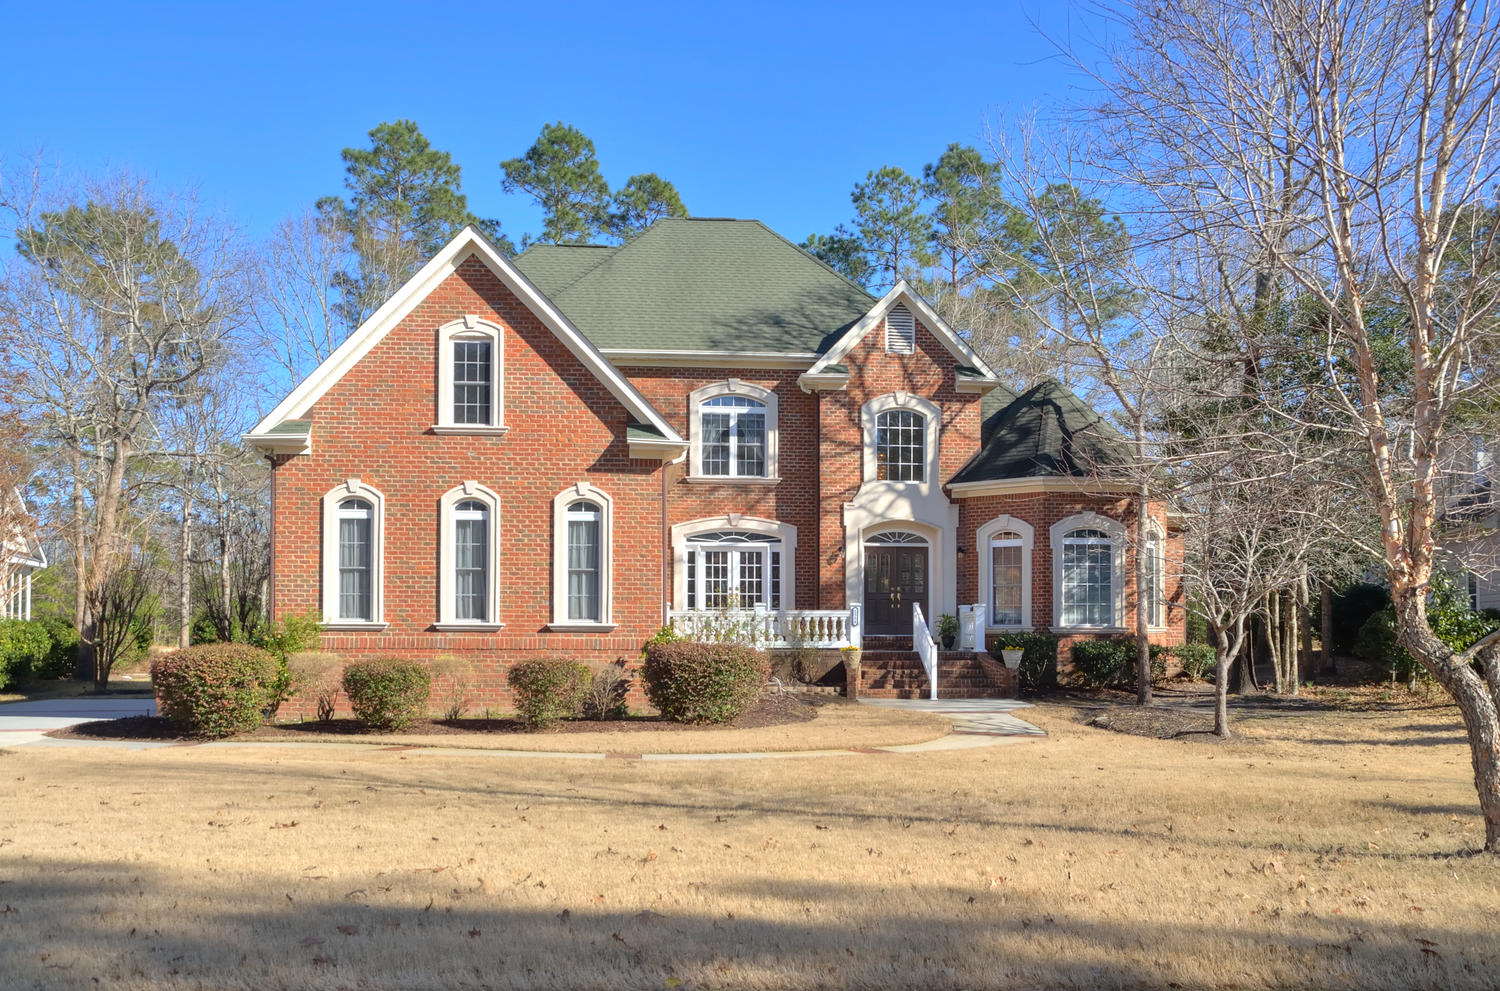 Single Family Home for Sale at Undiscovered Beauty in Bolivia 1596 Brushwood Court SE Bolivia, North Carolina, 28422 United States